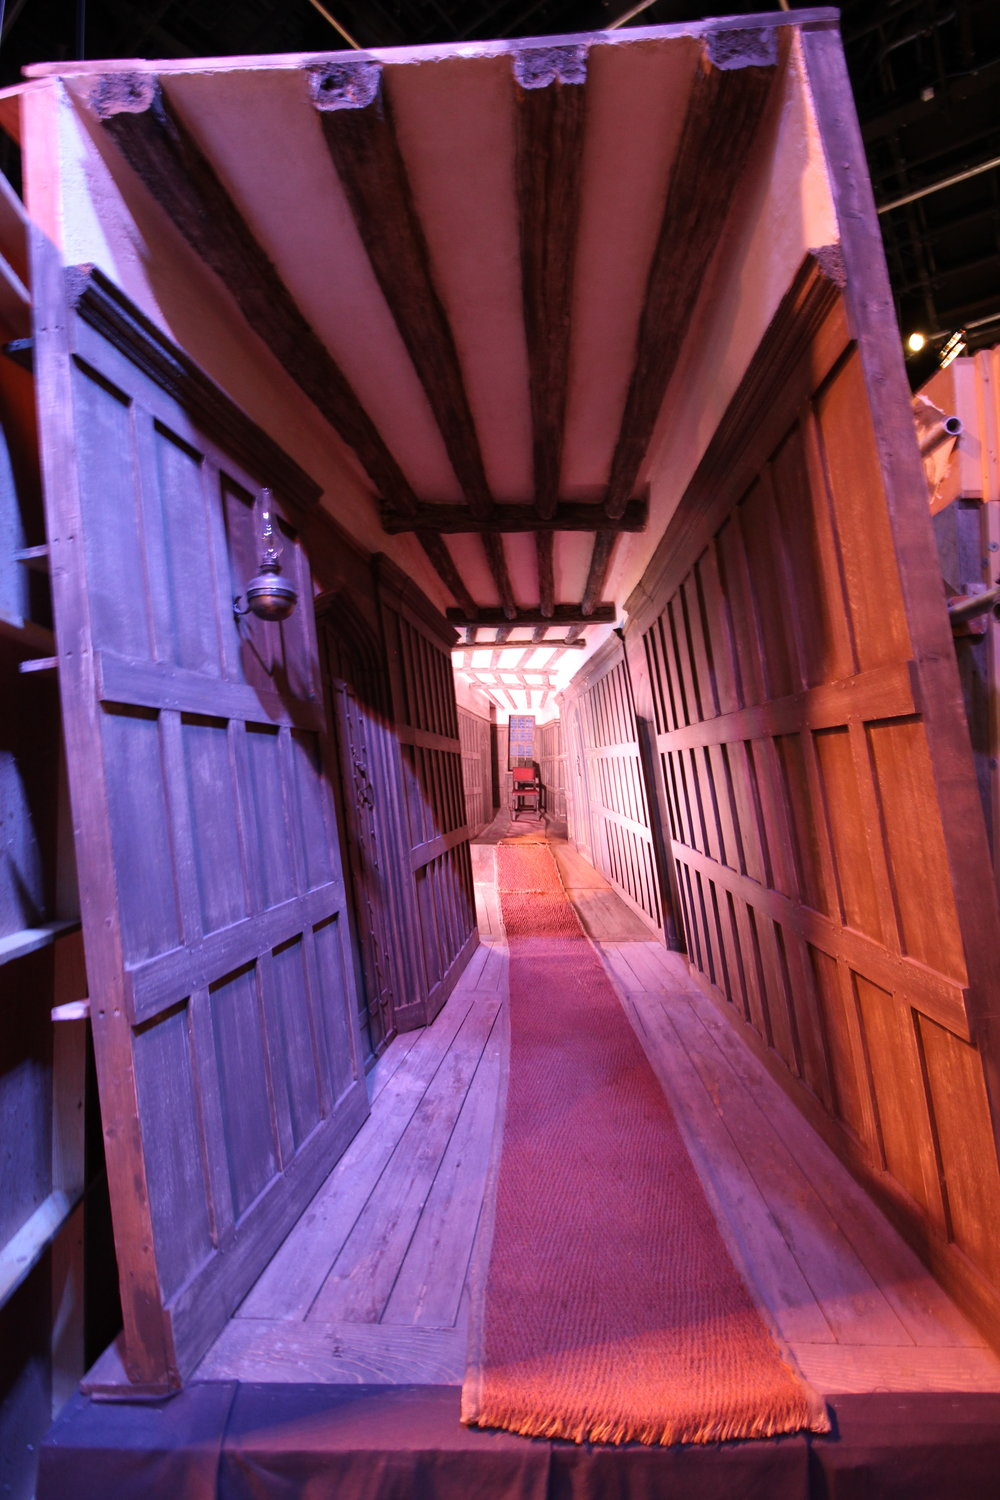 The Leaky Cauldron Hallway at Warner Bros Studios